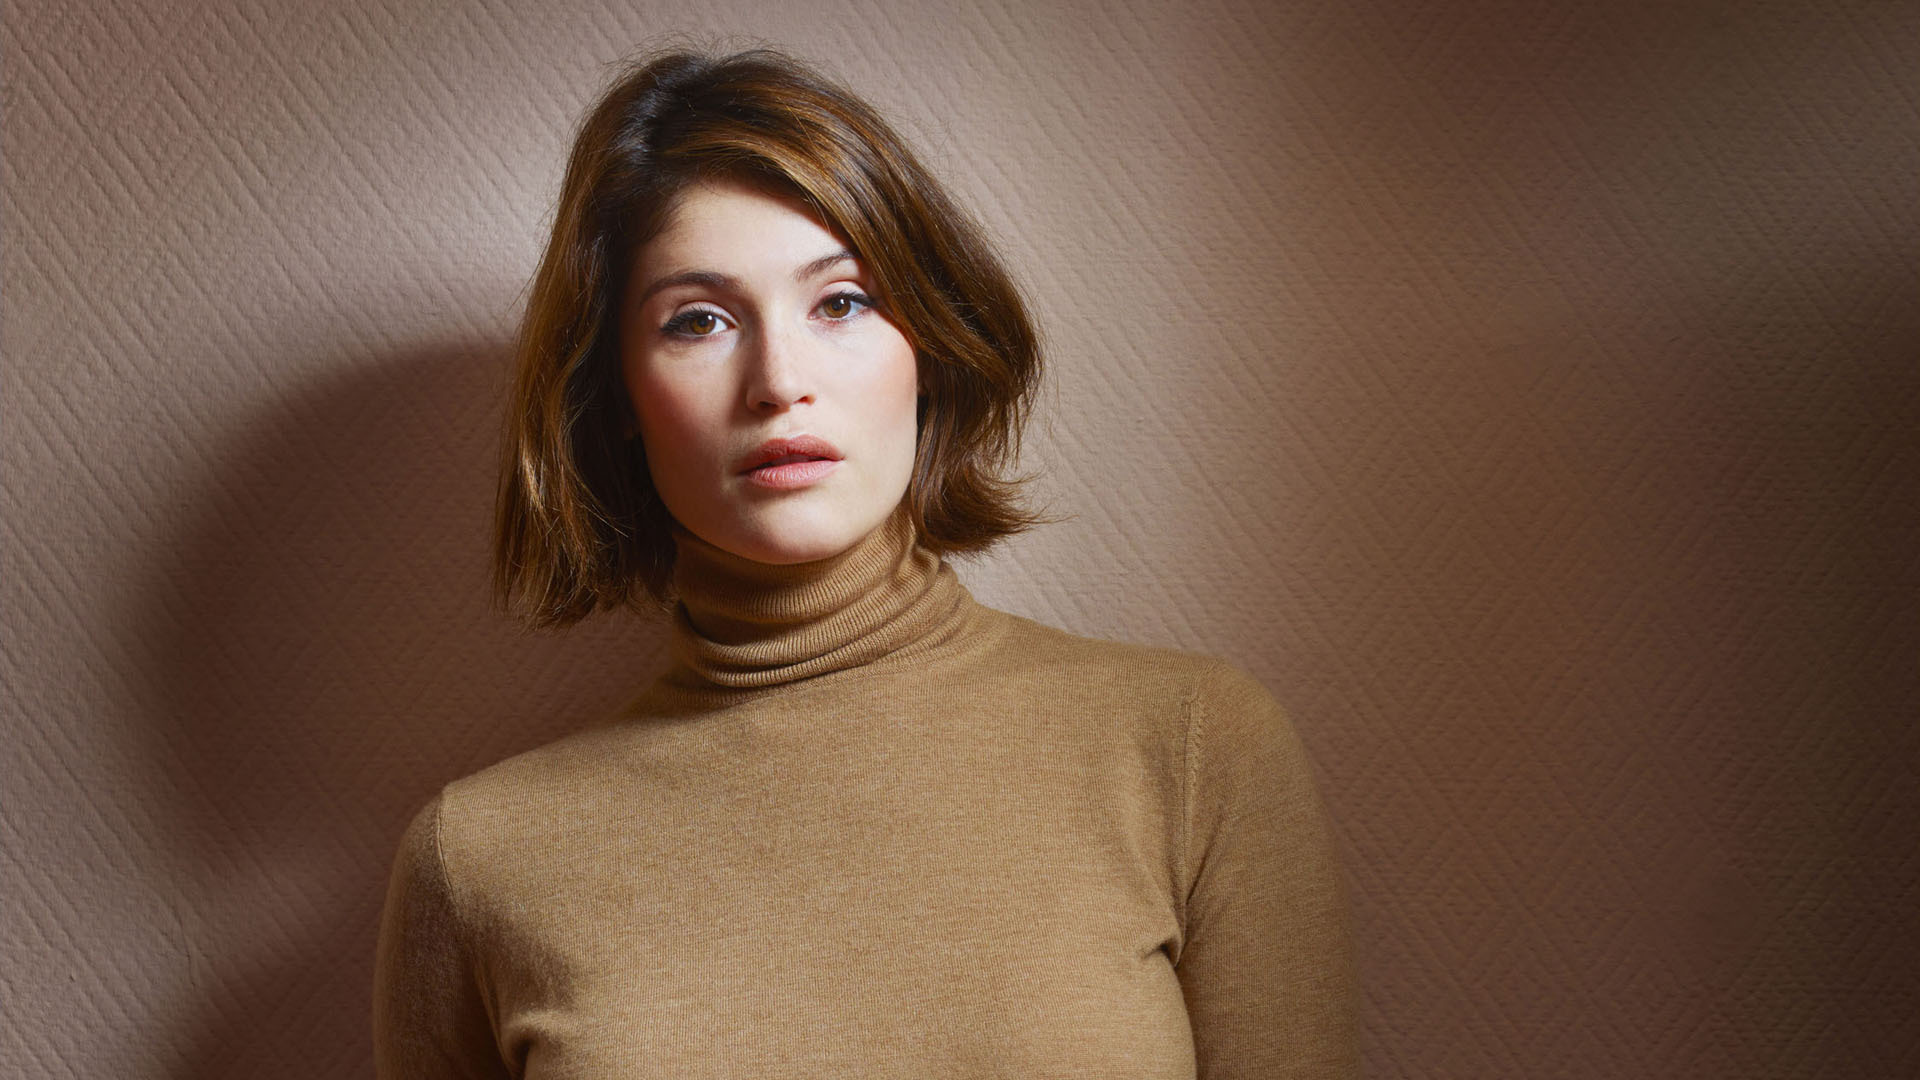 Gemma arterton wallpapers celebnest - Walpepar photos ...